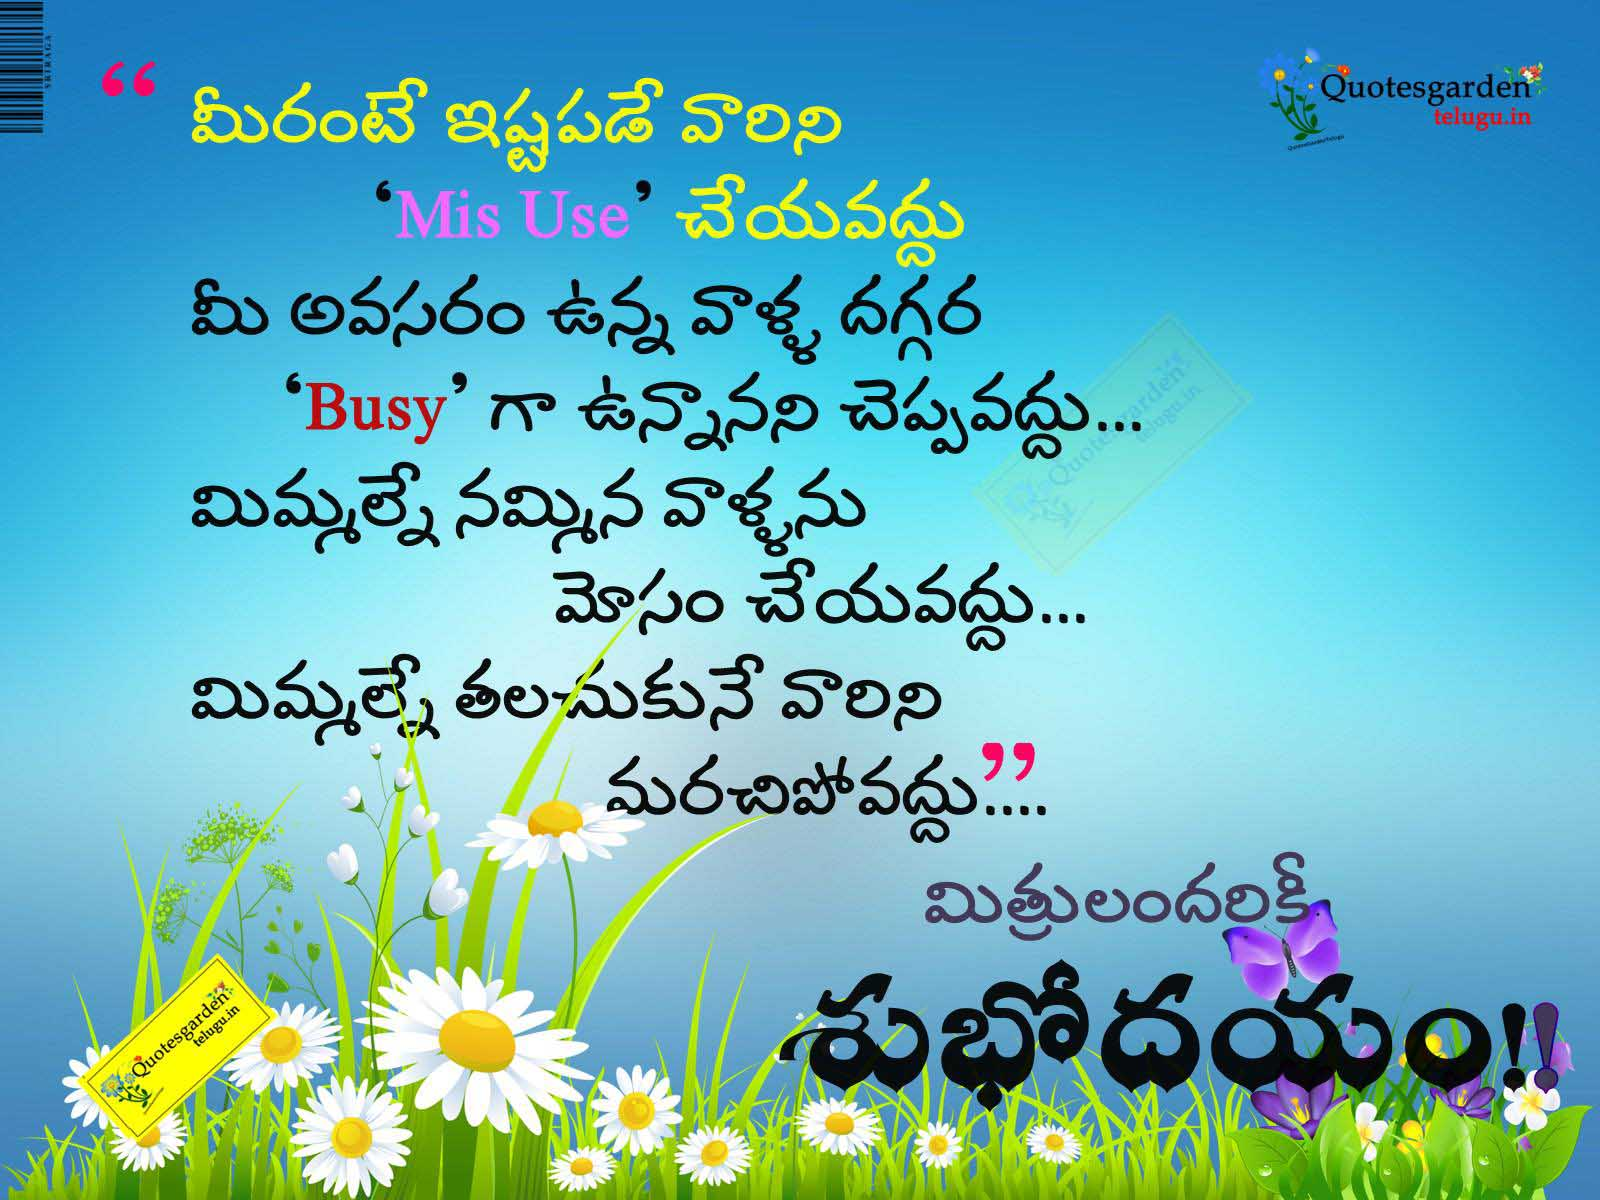 I Love Quotes In Telugu : Telugu Quotations On Love Best telugu heart touching love quotes with ...